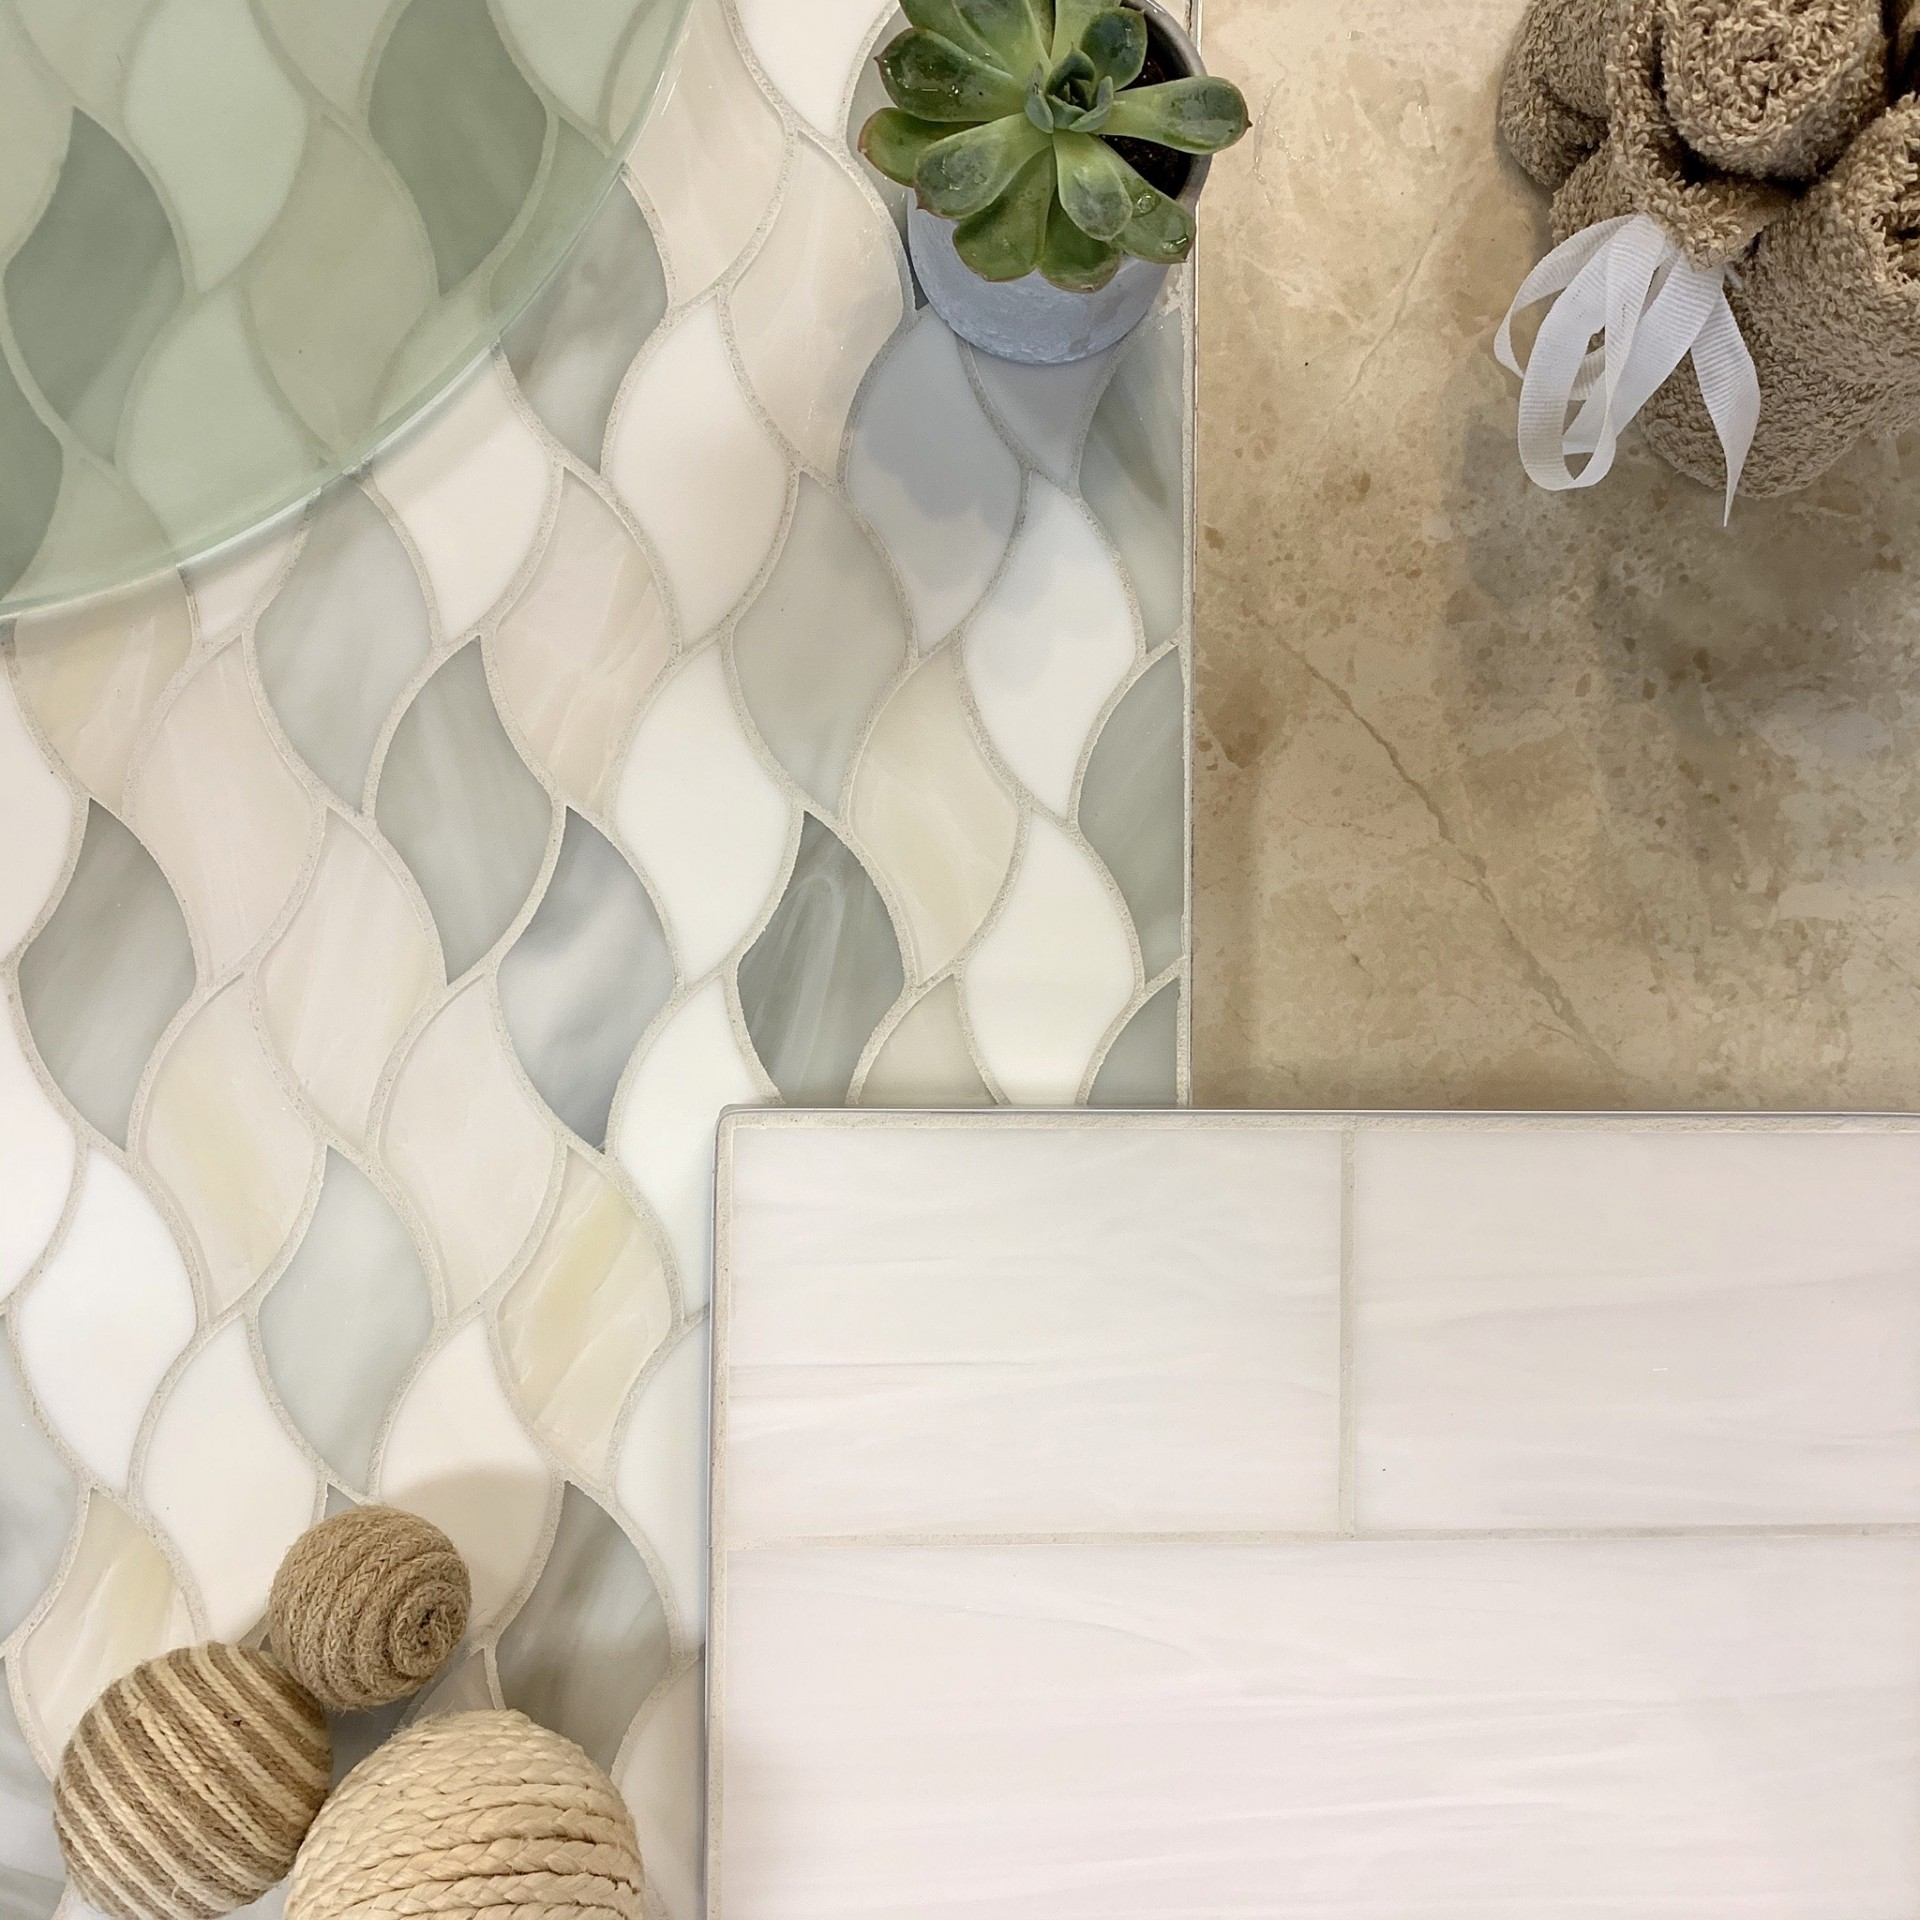 Flat layout of tile inspiration